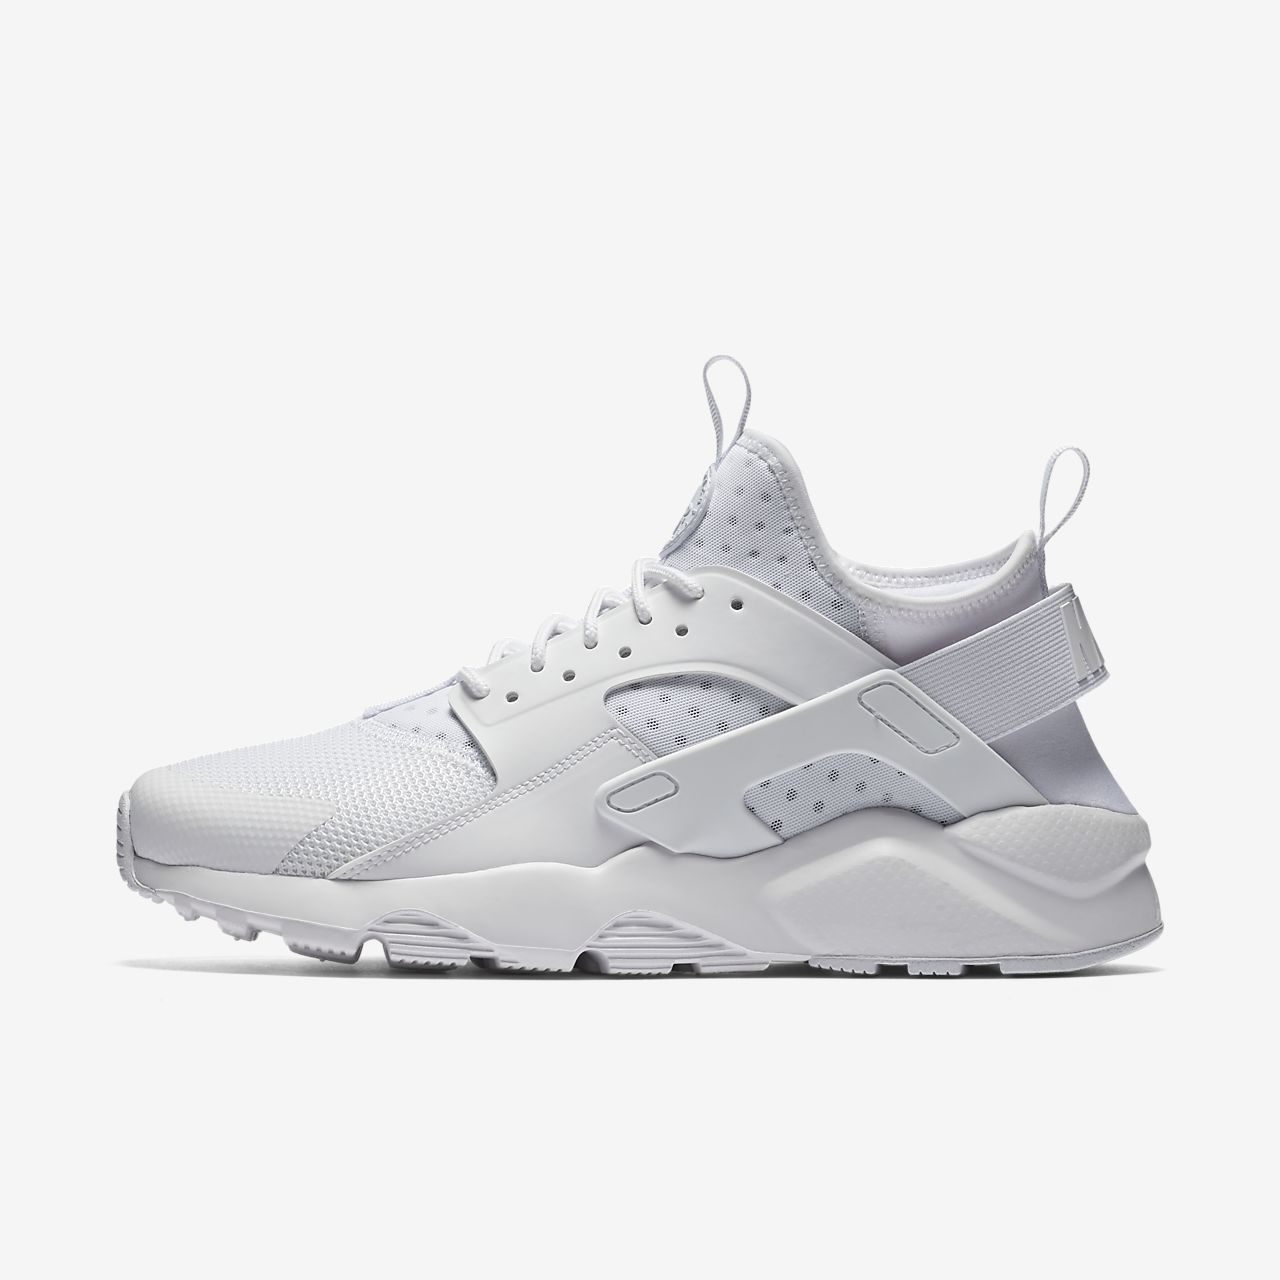 f0faeadb40ac4 Nike Air Huarache Ultra Men s Shoe. Nike.com AU